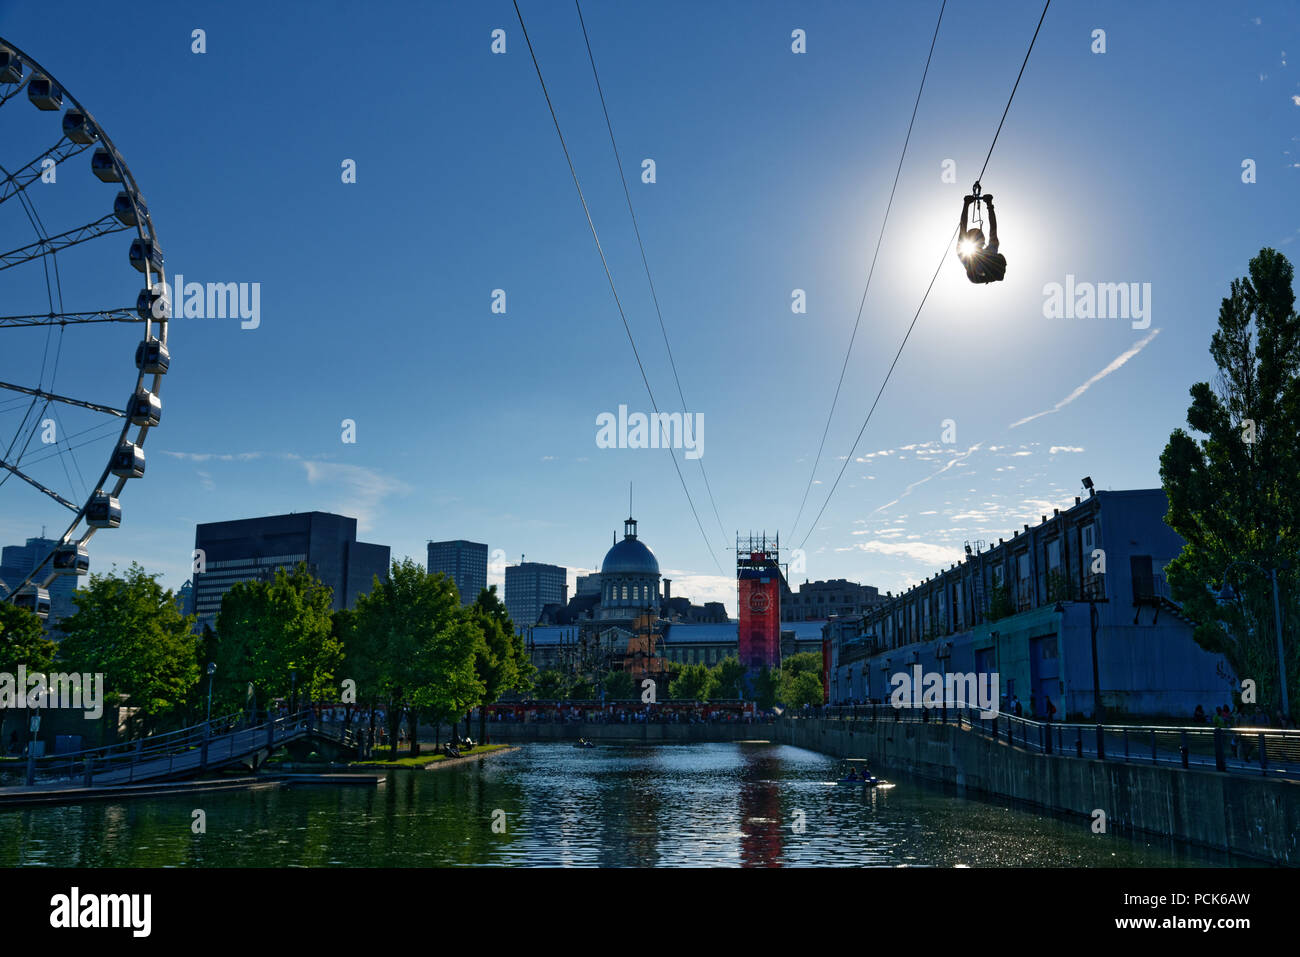 a-person-descending-the-zipline-in-montreal-old-port-with-la-grande-roue-de-montreal-behind-PCK6AW.jpg